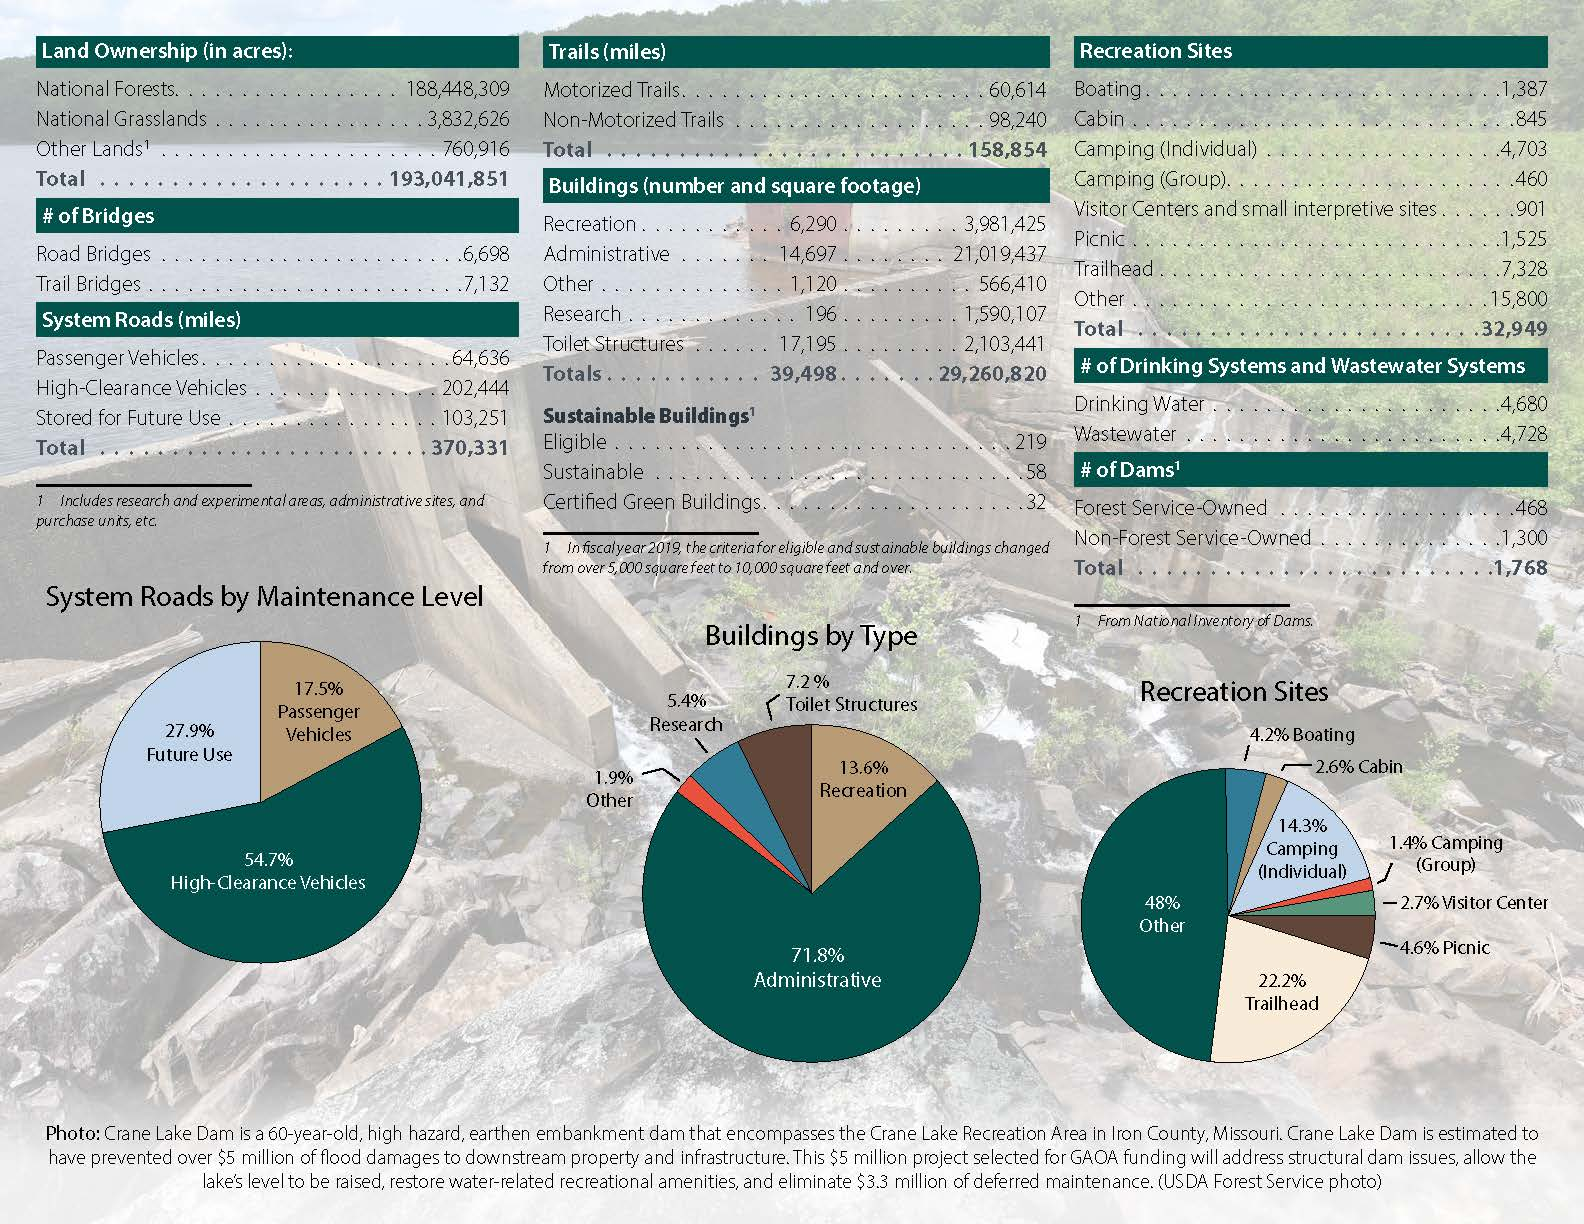 Image of brochure with statistical info